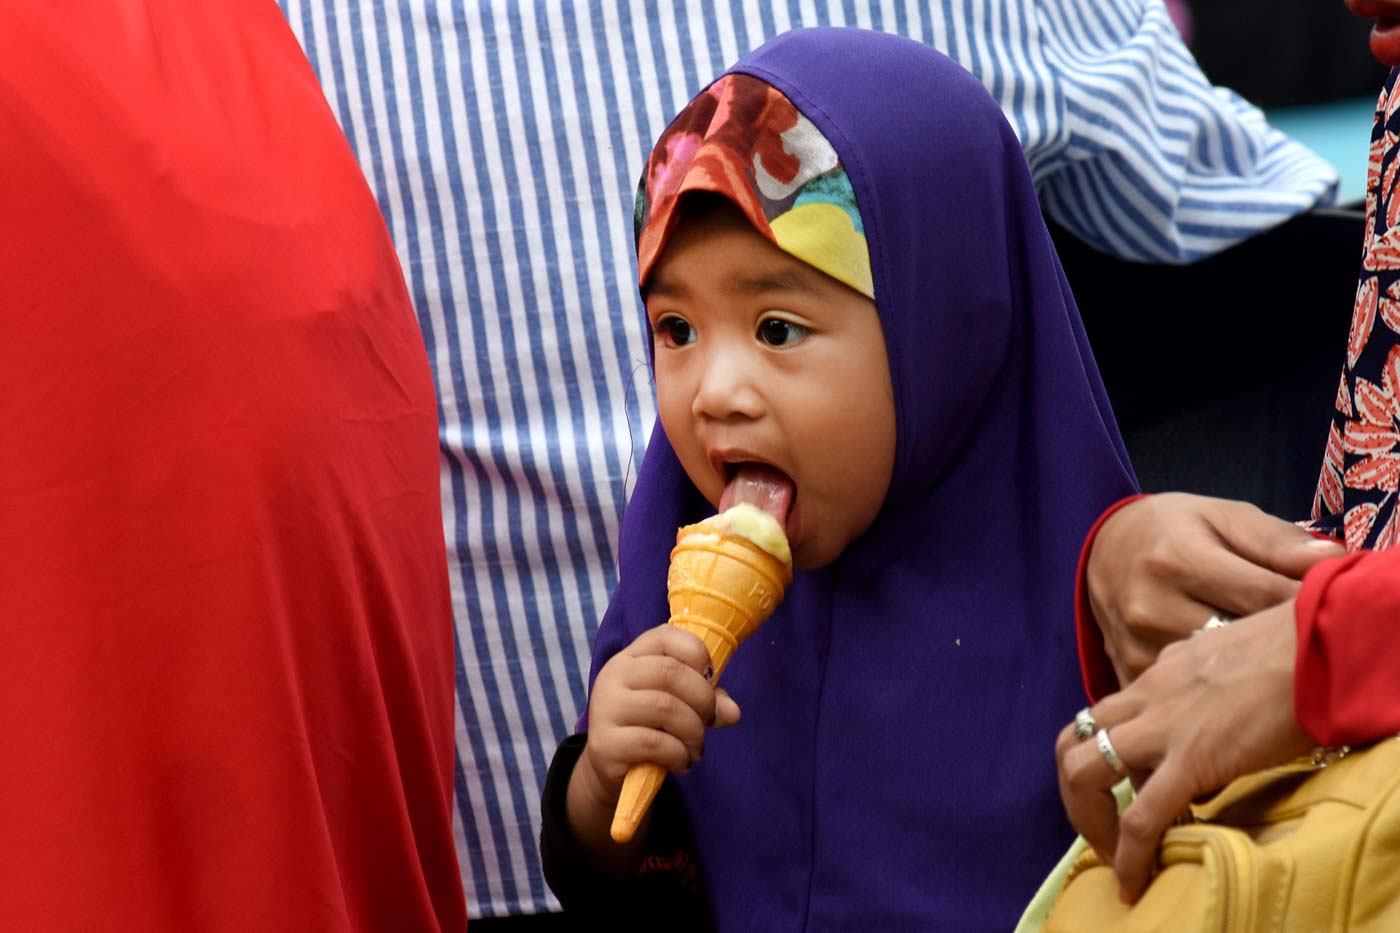 FEAST. A child licks her ice cream during the celebration of Eid'l Adha at the Quezon Memorial Circle on August 21, 2018. Photo by Angie de Silva/Rappler